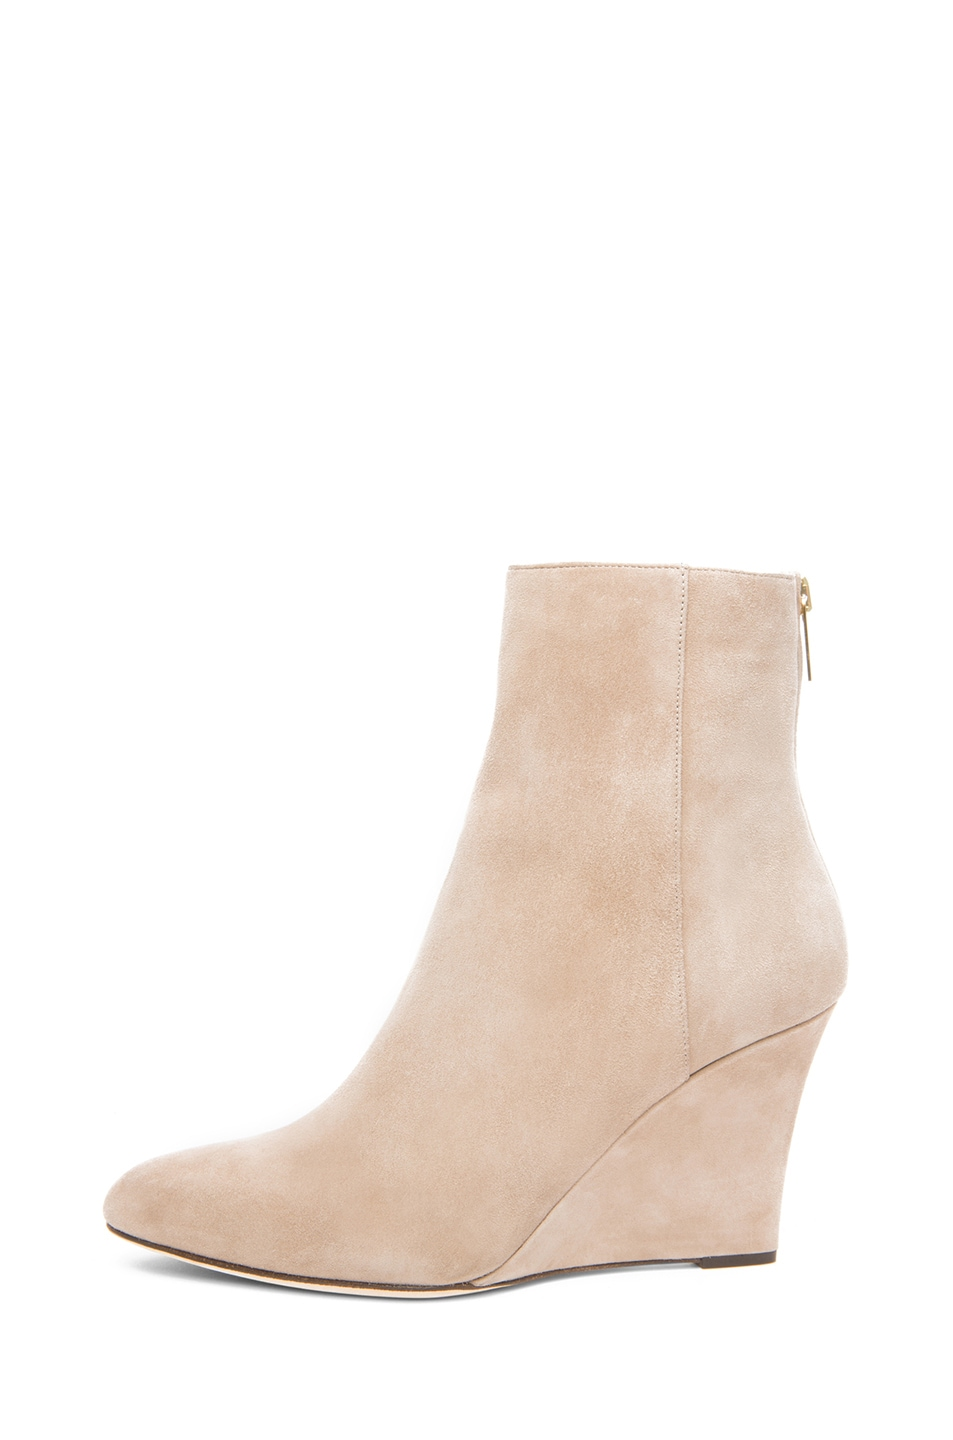 Image 1 of Jimmy Choo Mayor Suede 85mm Wedge Ankle Boots in Latte